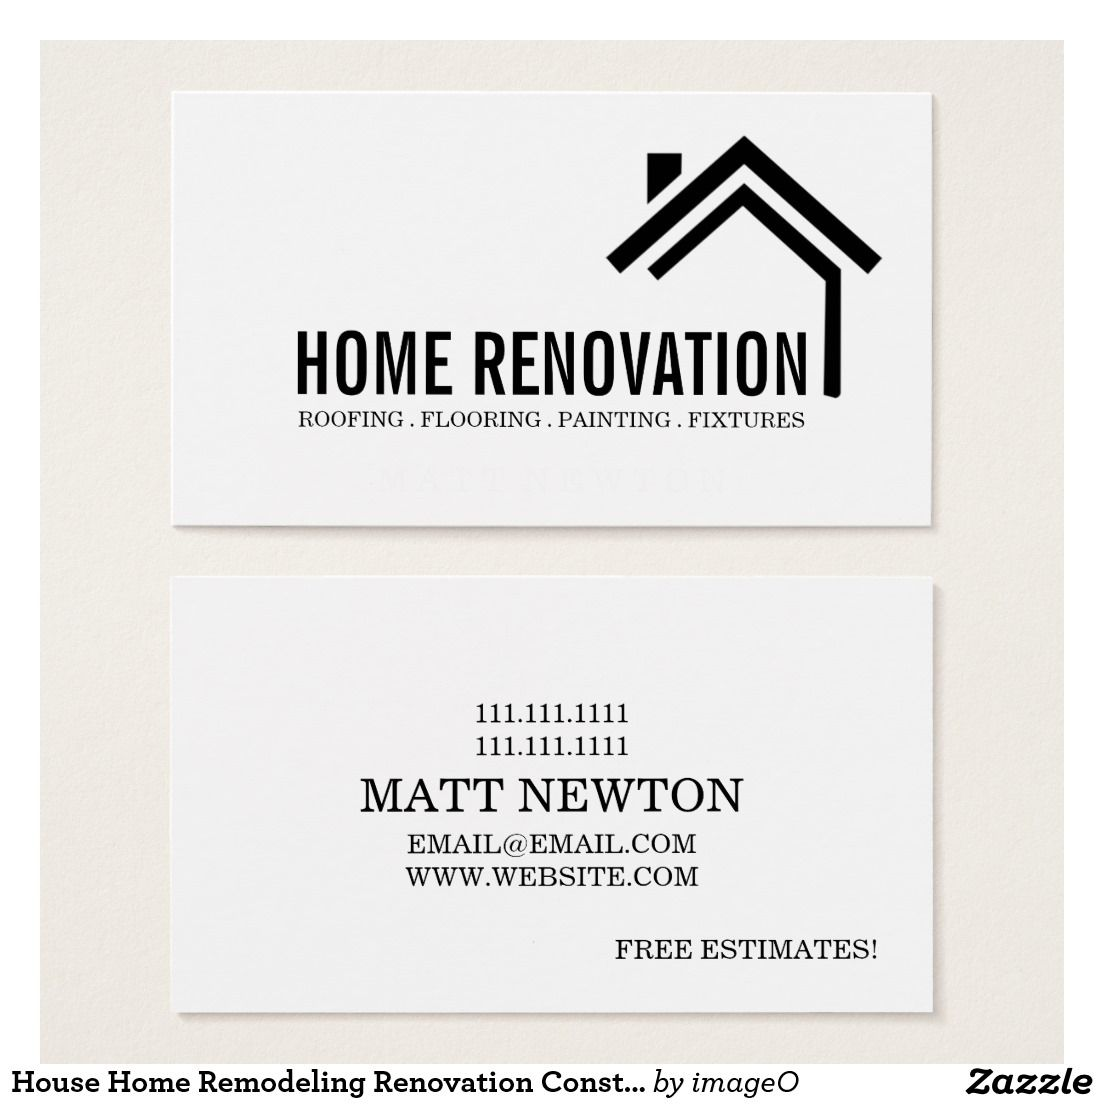 House Home Remodeling Renovation Construction Business Card ...